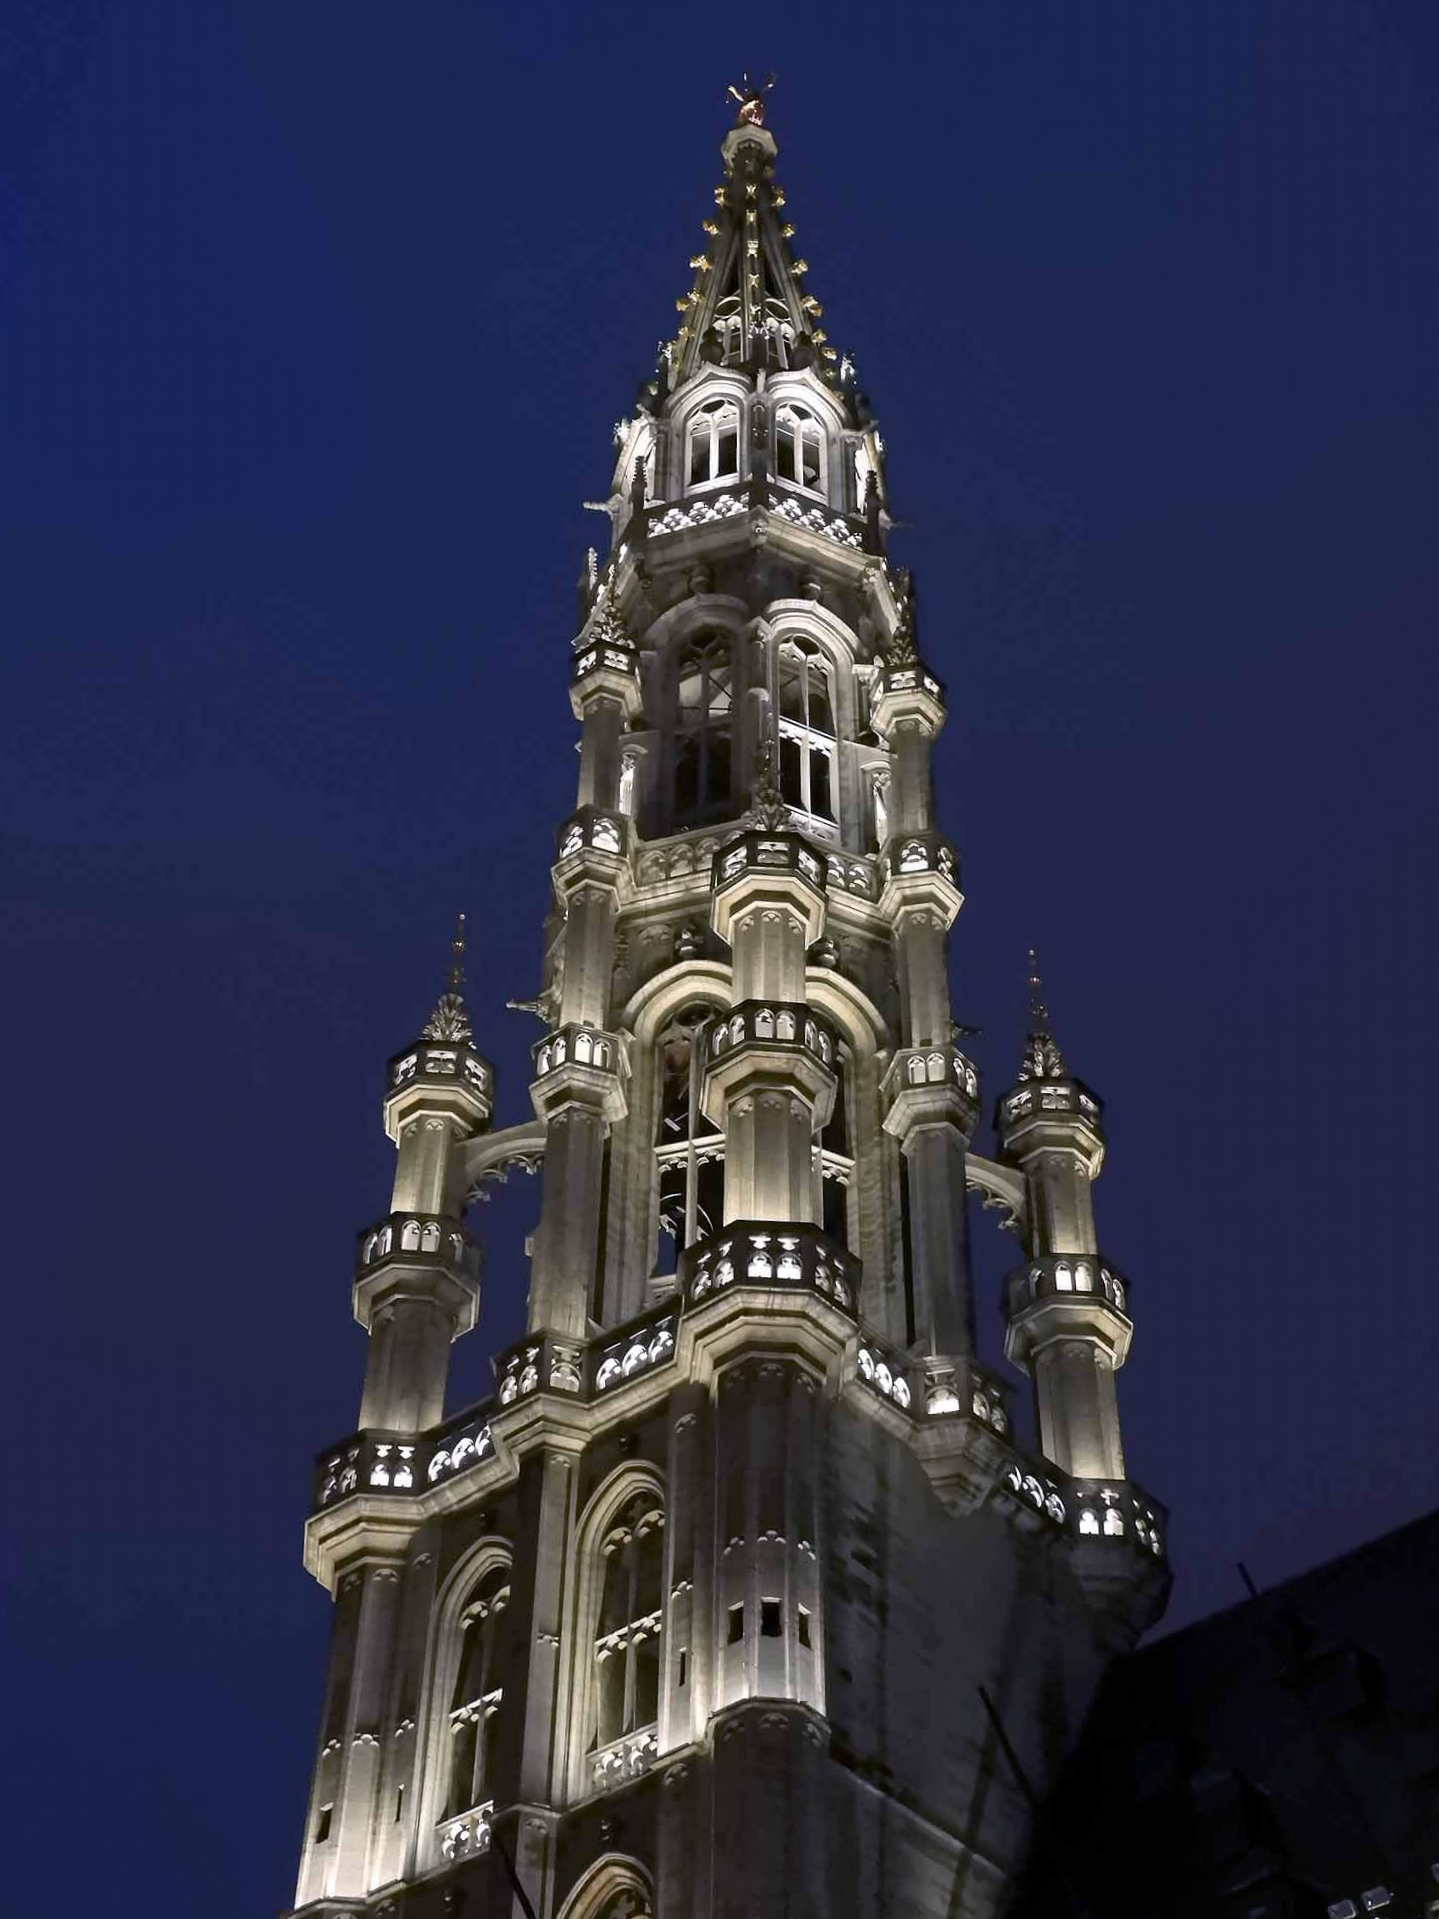 belgium-brussels-night-tower-grand-place.jpg